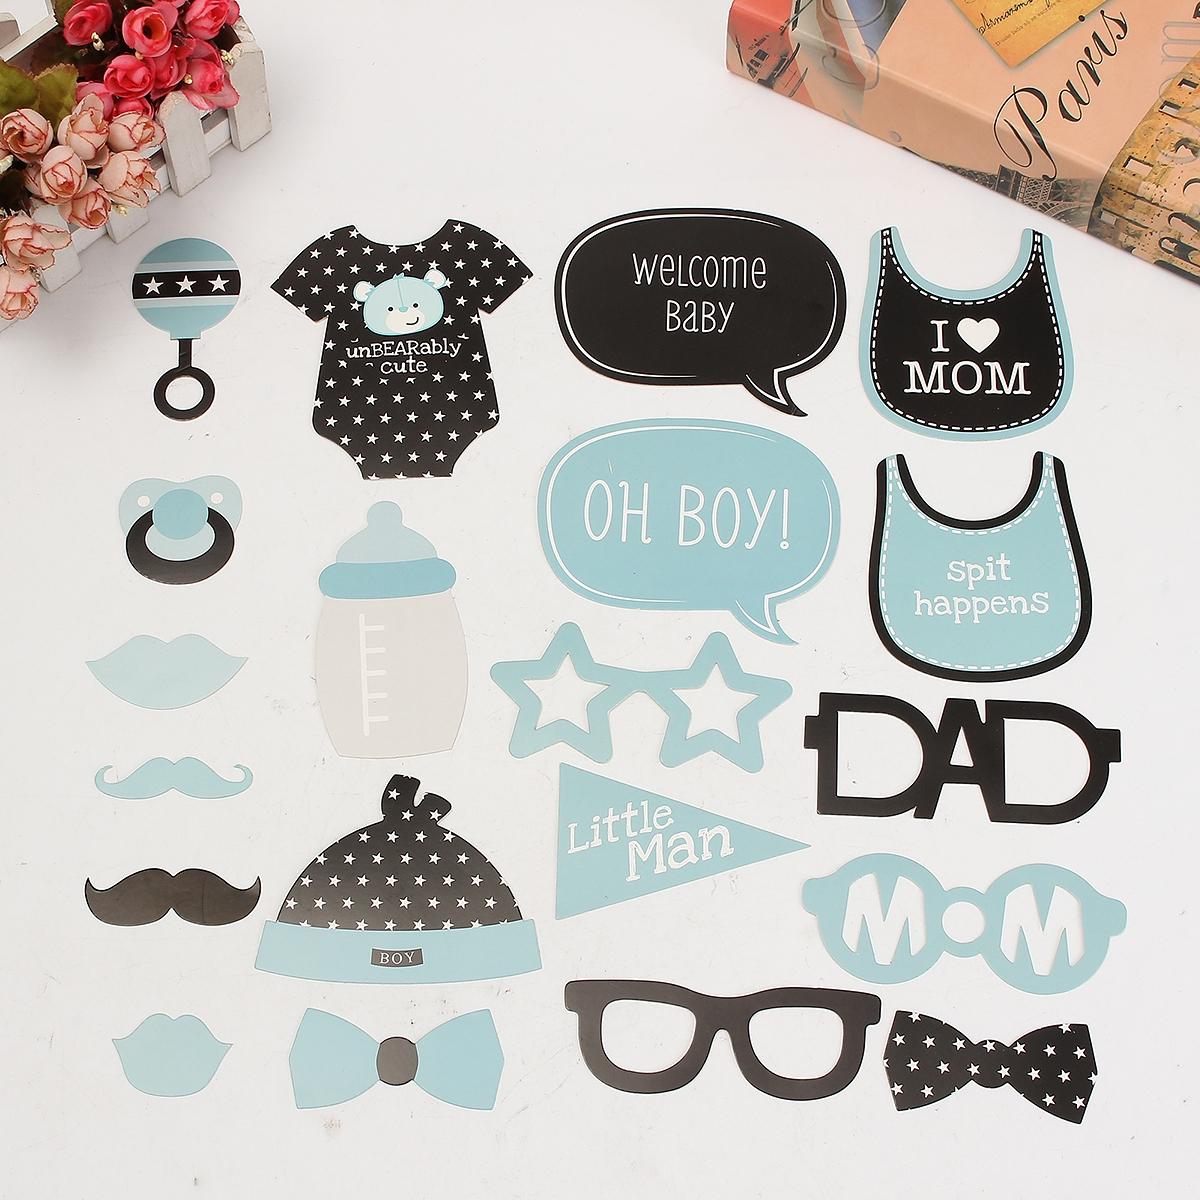 Baby Child Birthday Party Funny Interesting Photo Paper Beard Props